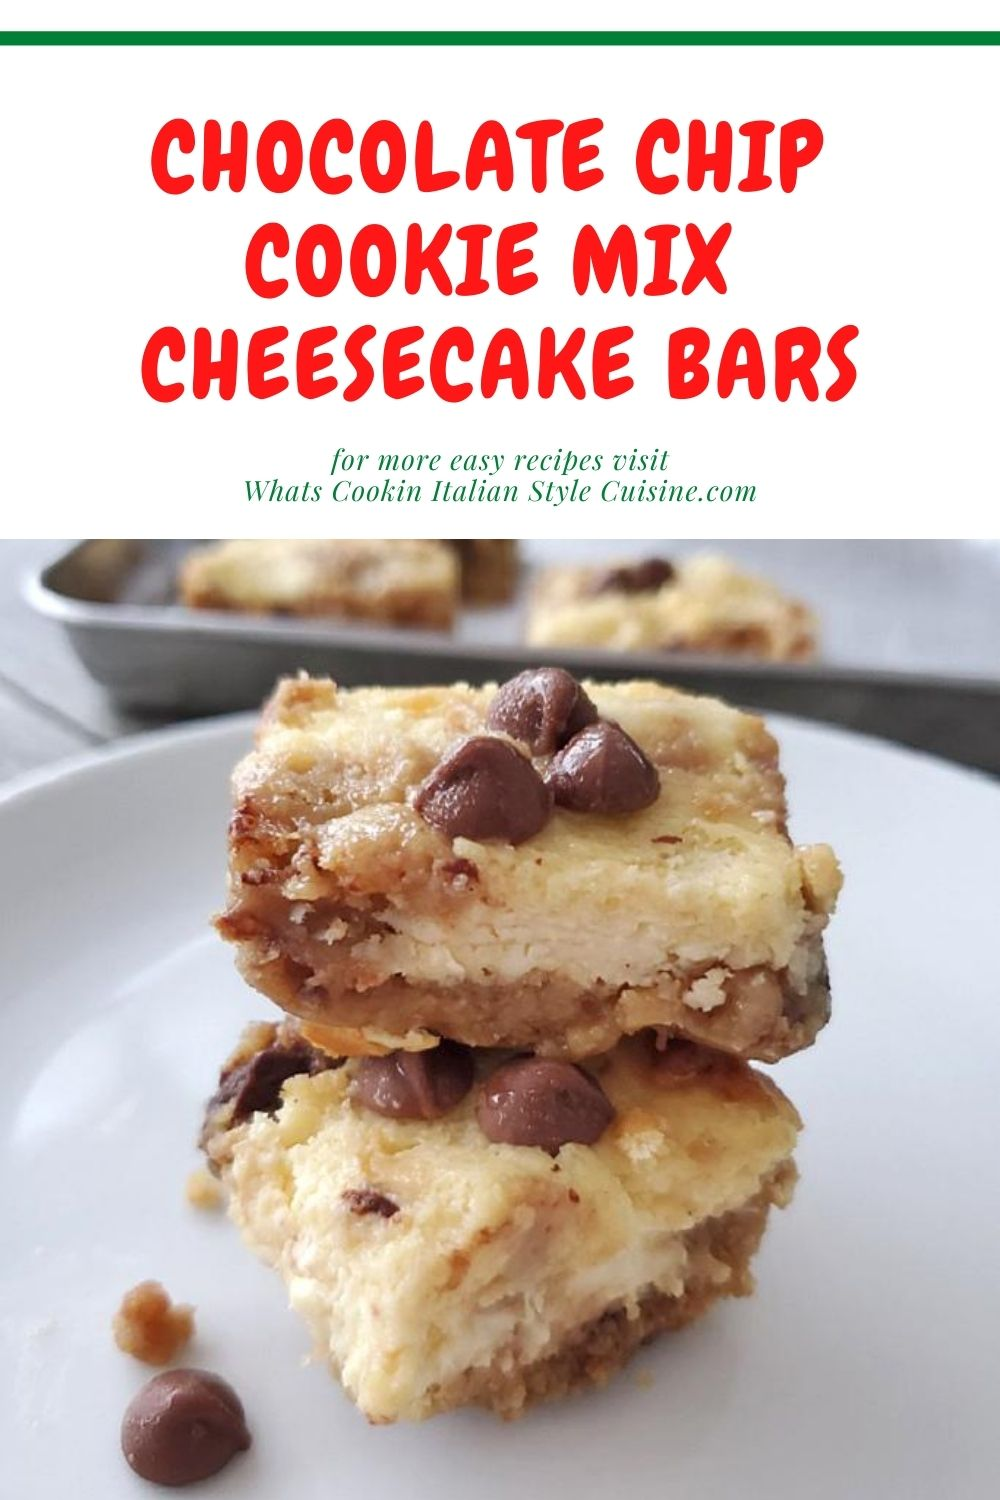 pin for later how to use chocolate chip cookie mix and make a dessert